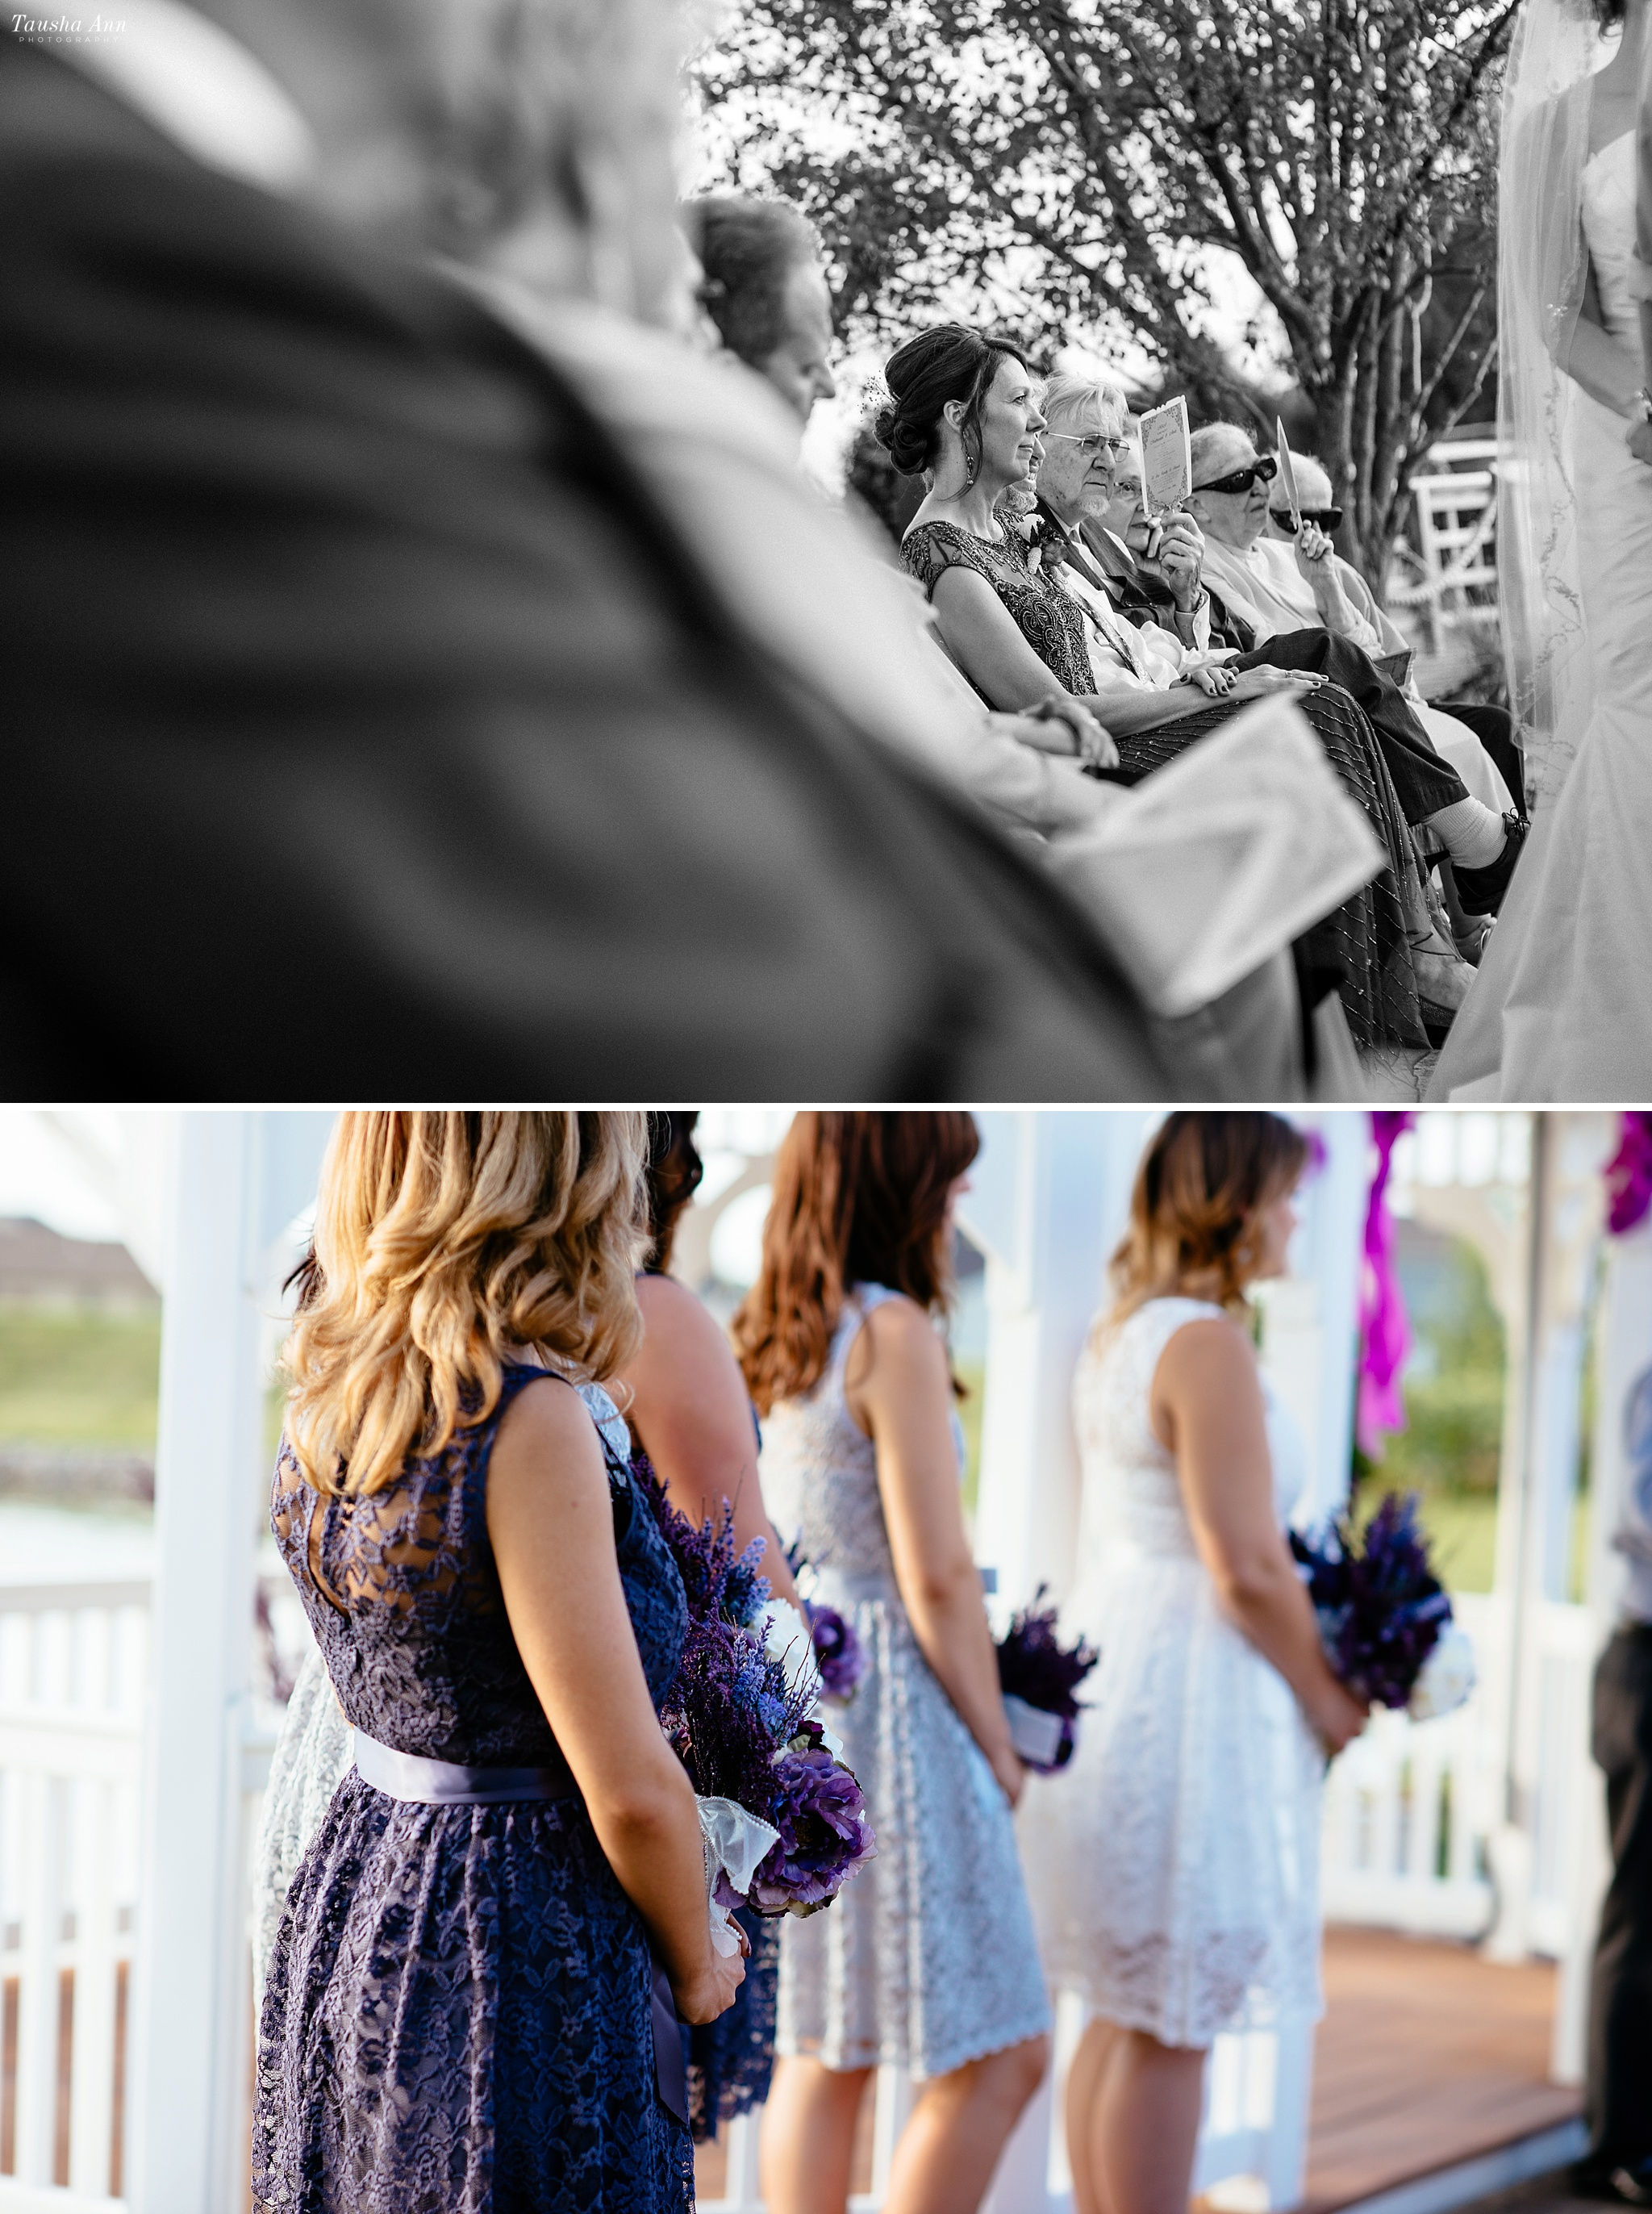 Candid images of bridesmaids and guests.